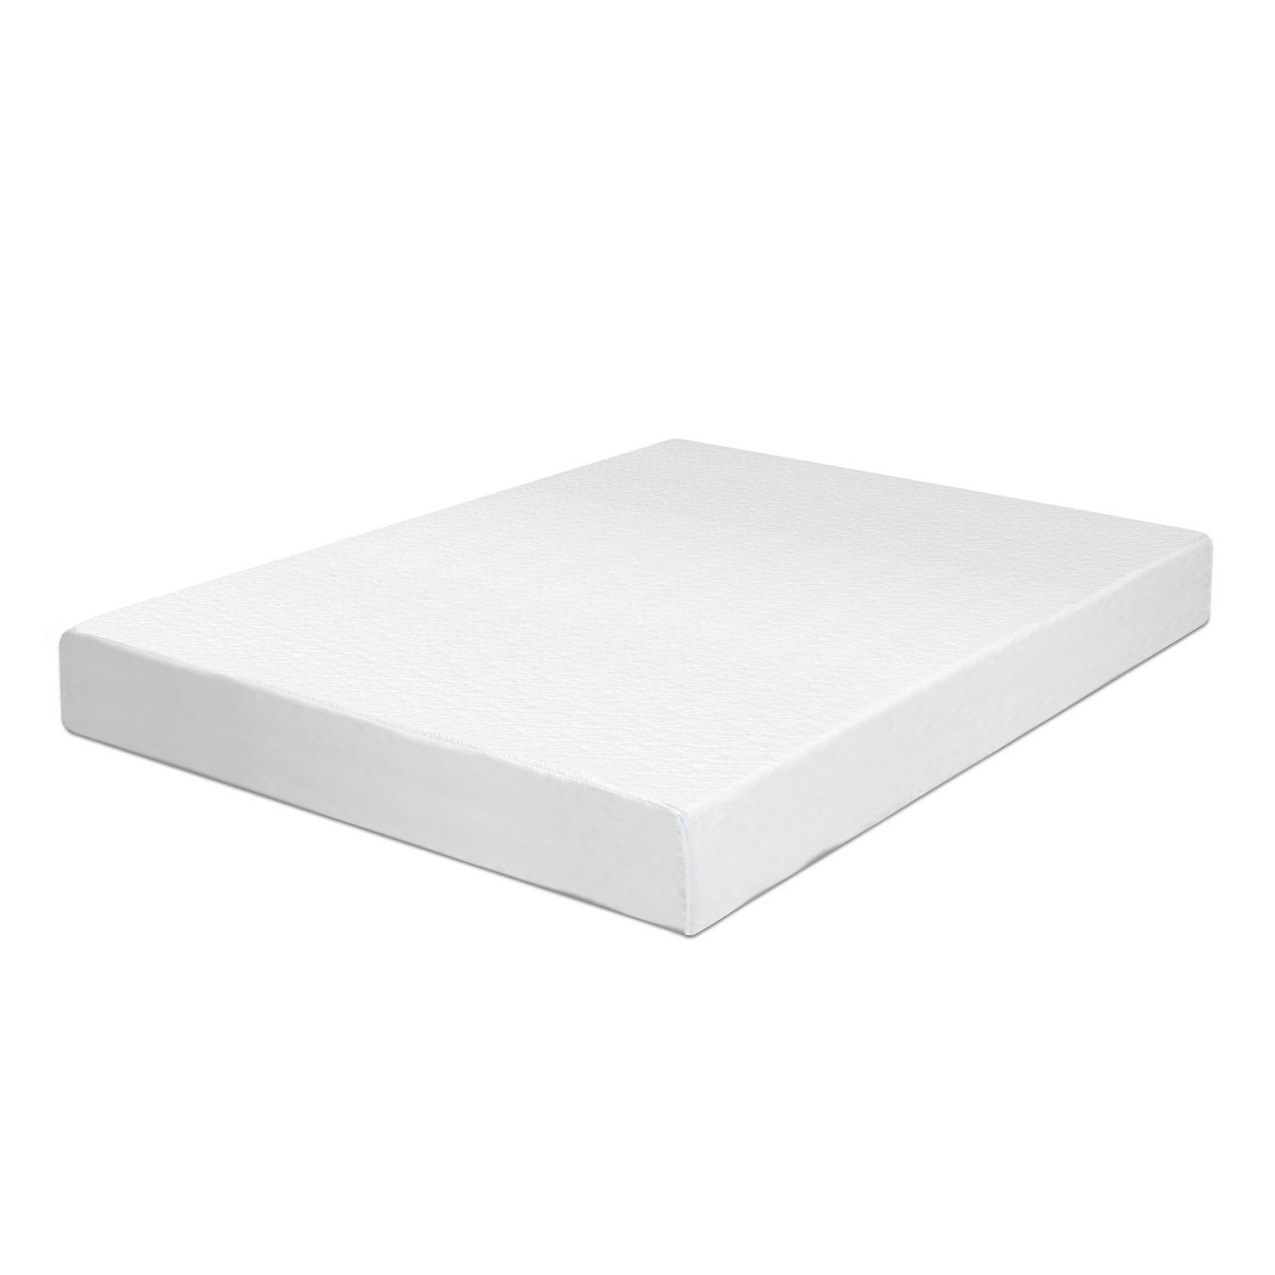 Swiss Ortho Sleep 6-Inch High-Density, 2 x Layered Memory Foam Mattress with Bamboo Cover Image